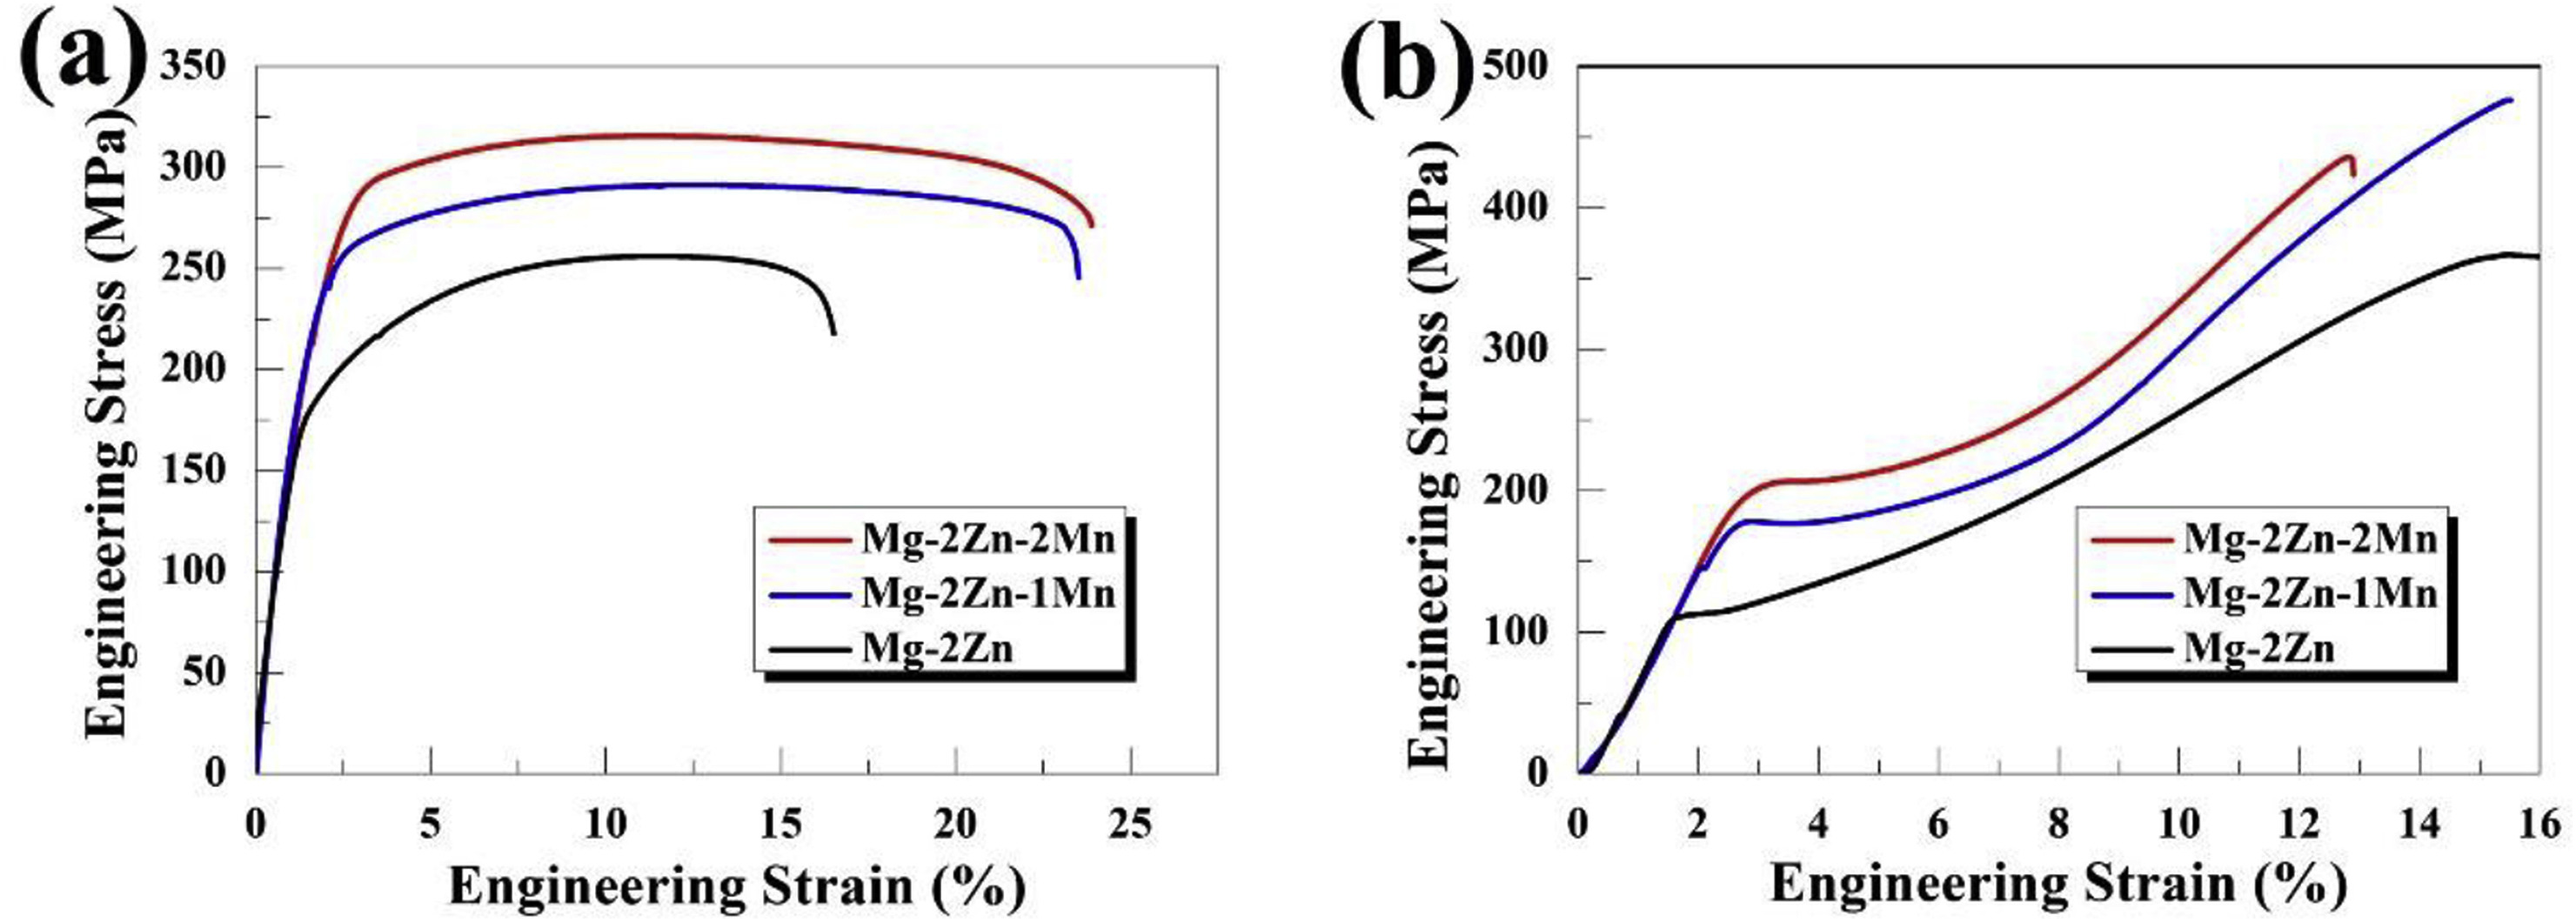 Development Of High Strength And Ductility In Mg 2zn